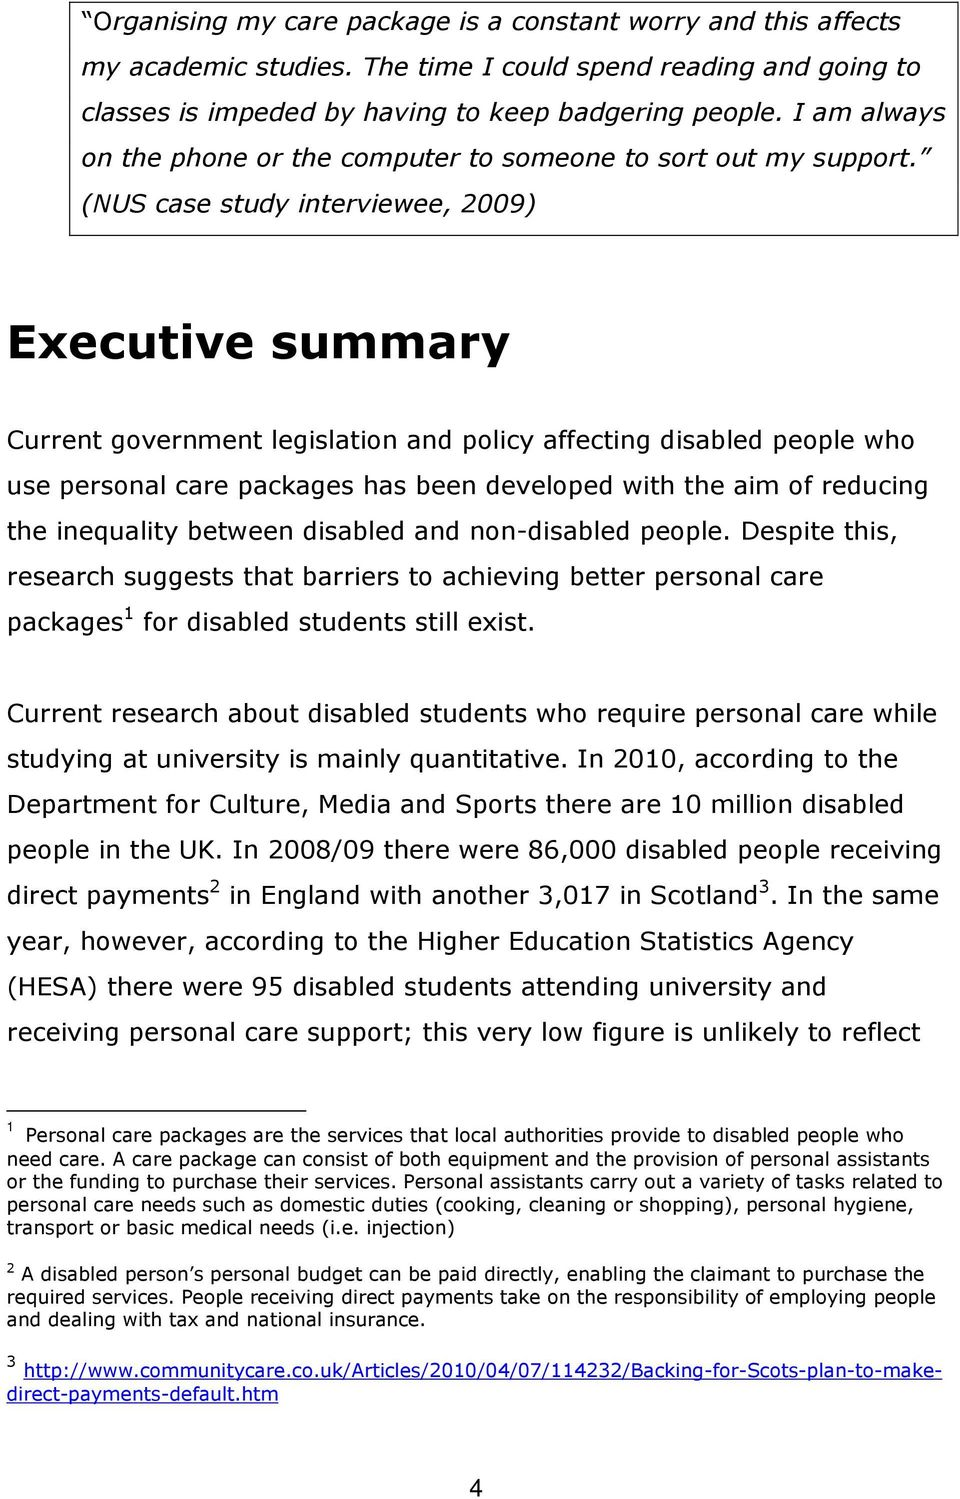 (NUS case study interviewee, 2009) Executive summary Current government legislation and policy affecting disabled people who use personal care packages has been developed with the aim of reducing the